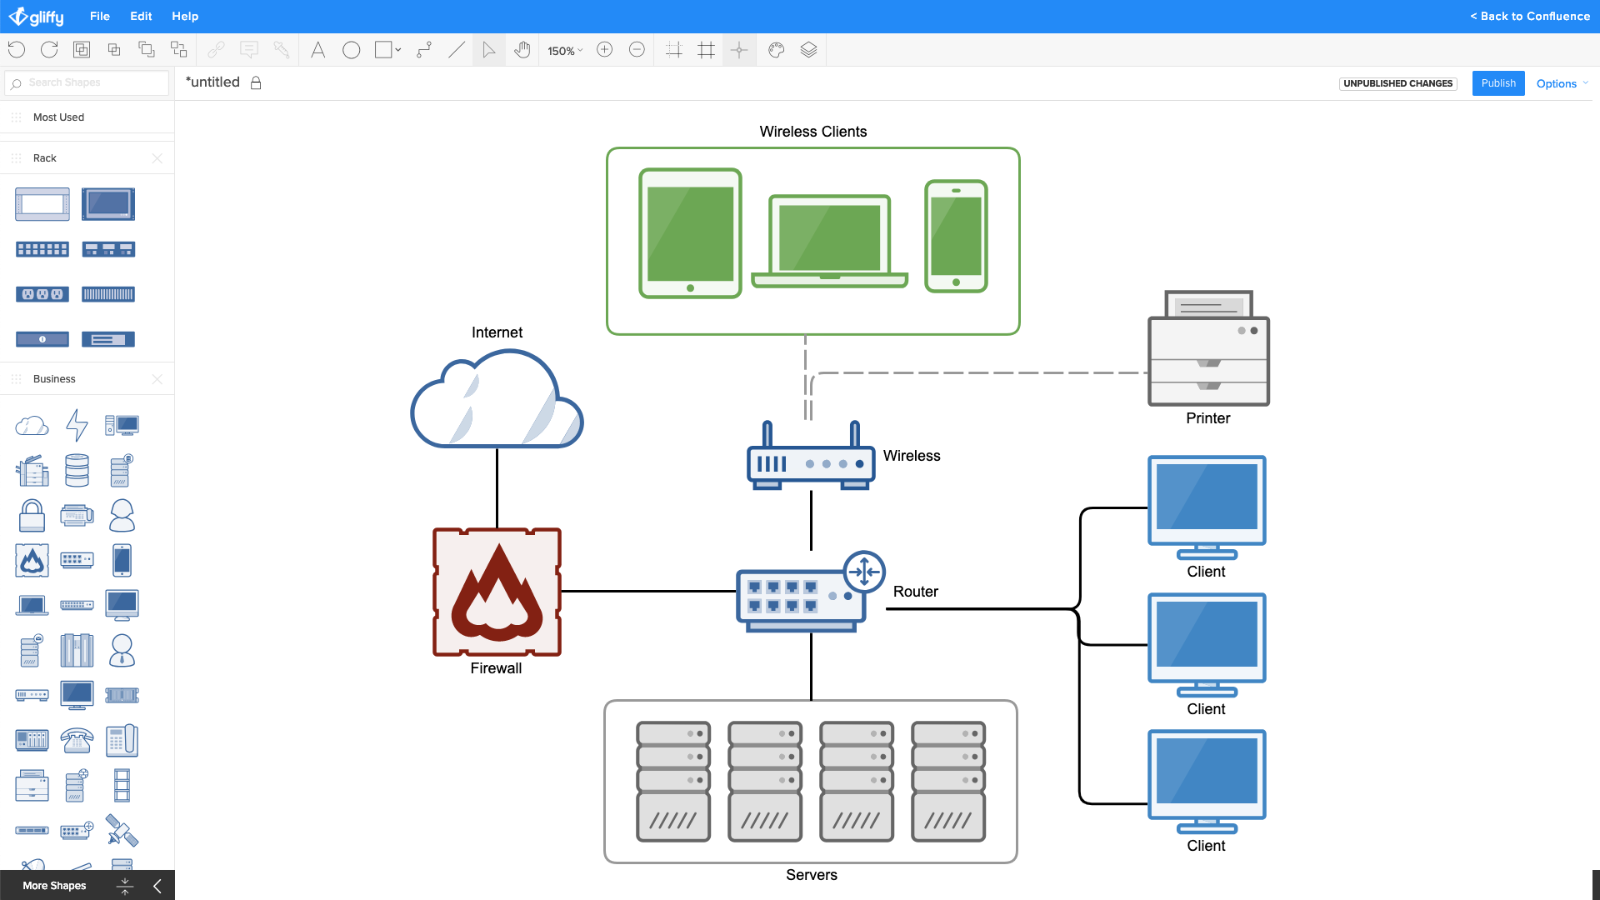 The Best 12 Isometric Network Diagram For You Softwaredesign At Various Scales Diagrams May Represent Sev Workflow Diagram Diagram Design Diagram Architecture